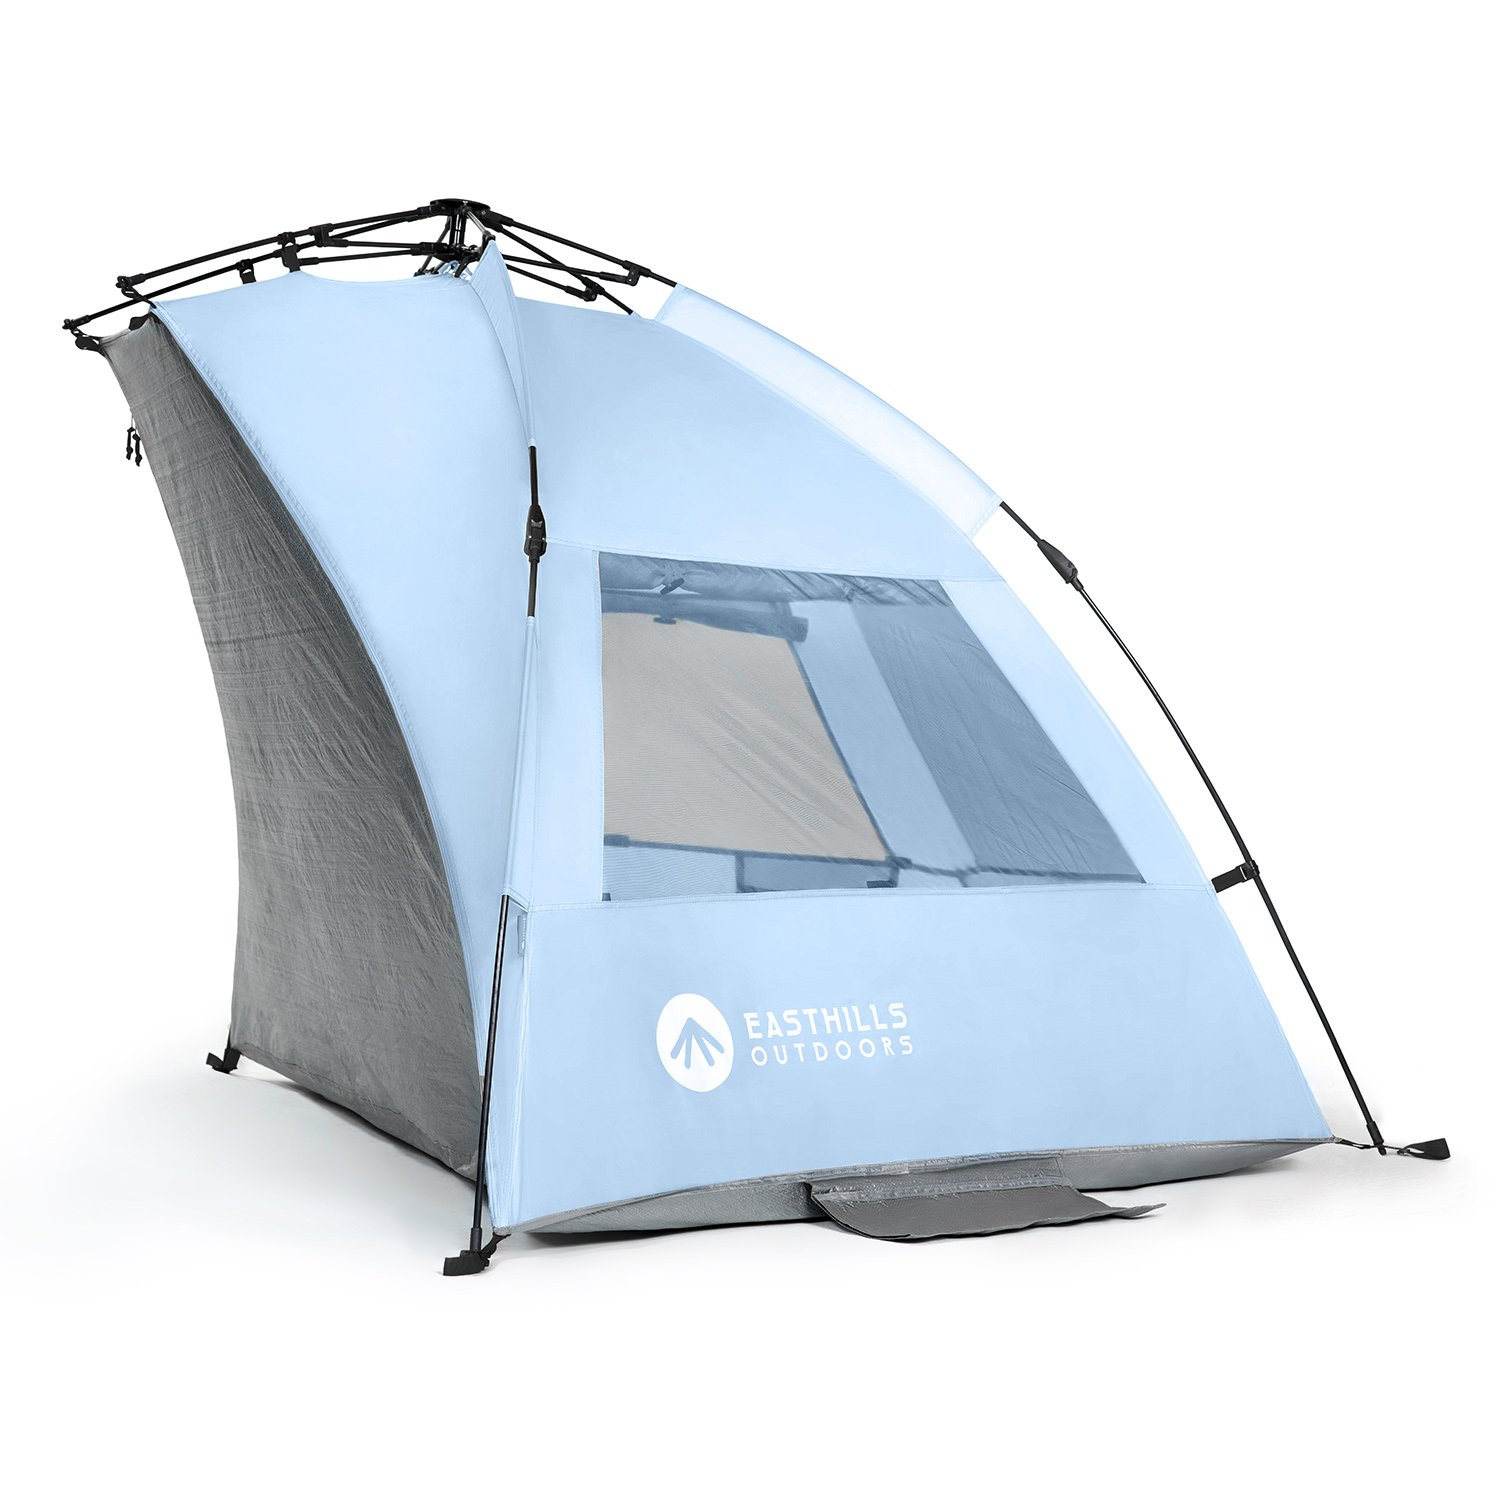 Easthills Outdoors Instant Shader Extended Easy Up Beach Tent